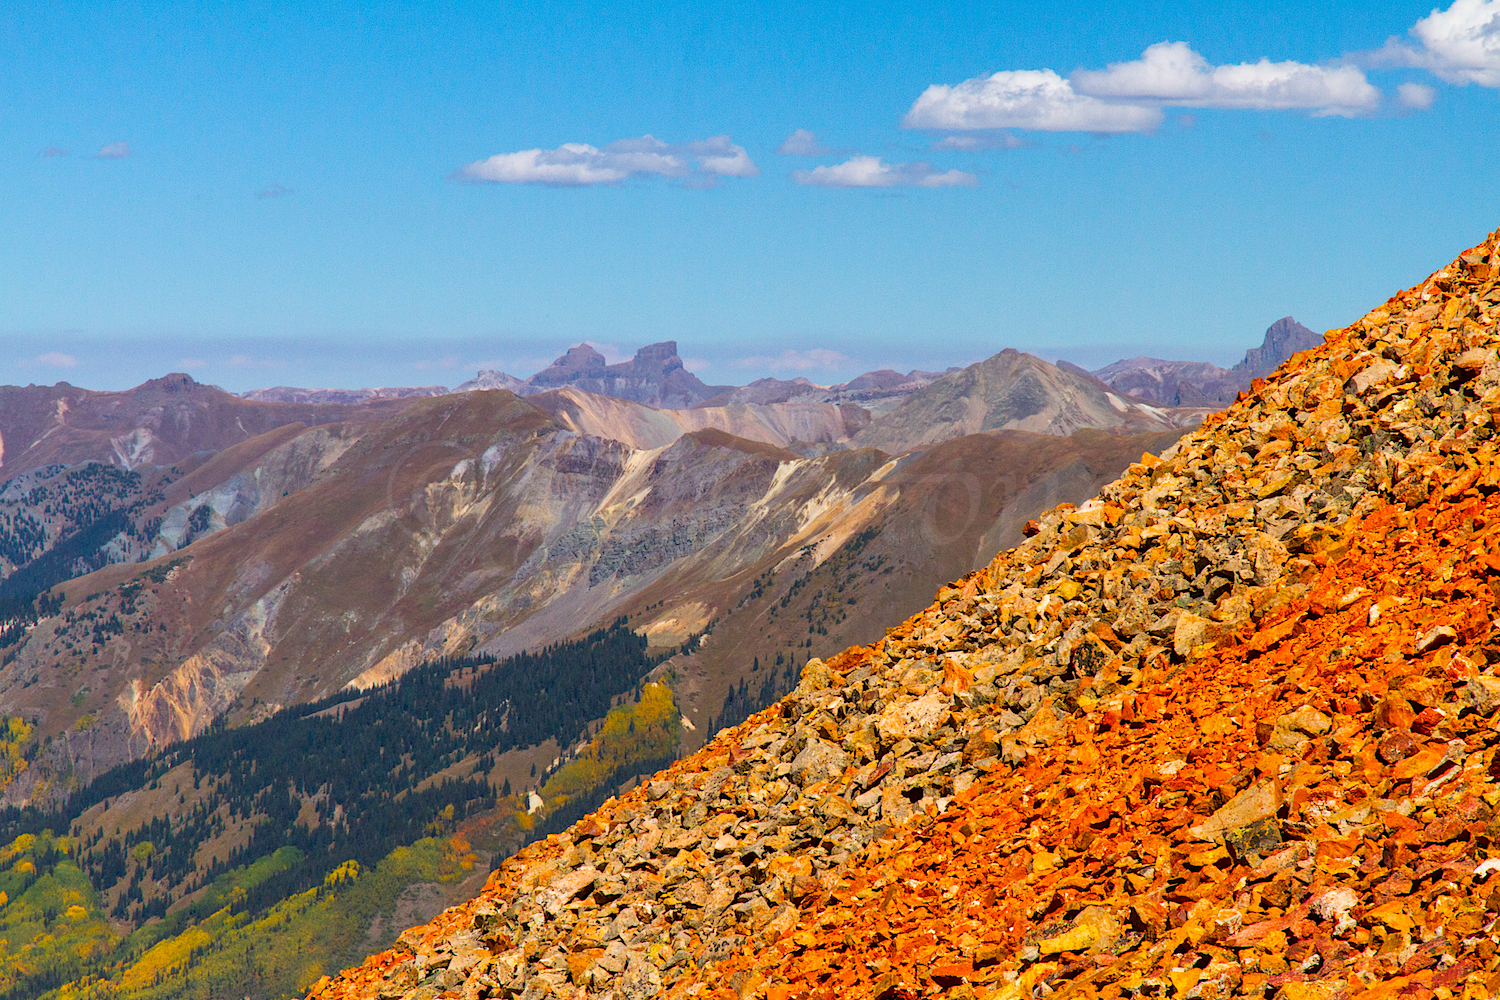 Red Mountain #3, Image # 6163